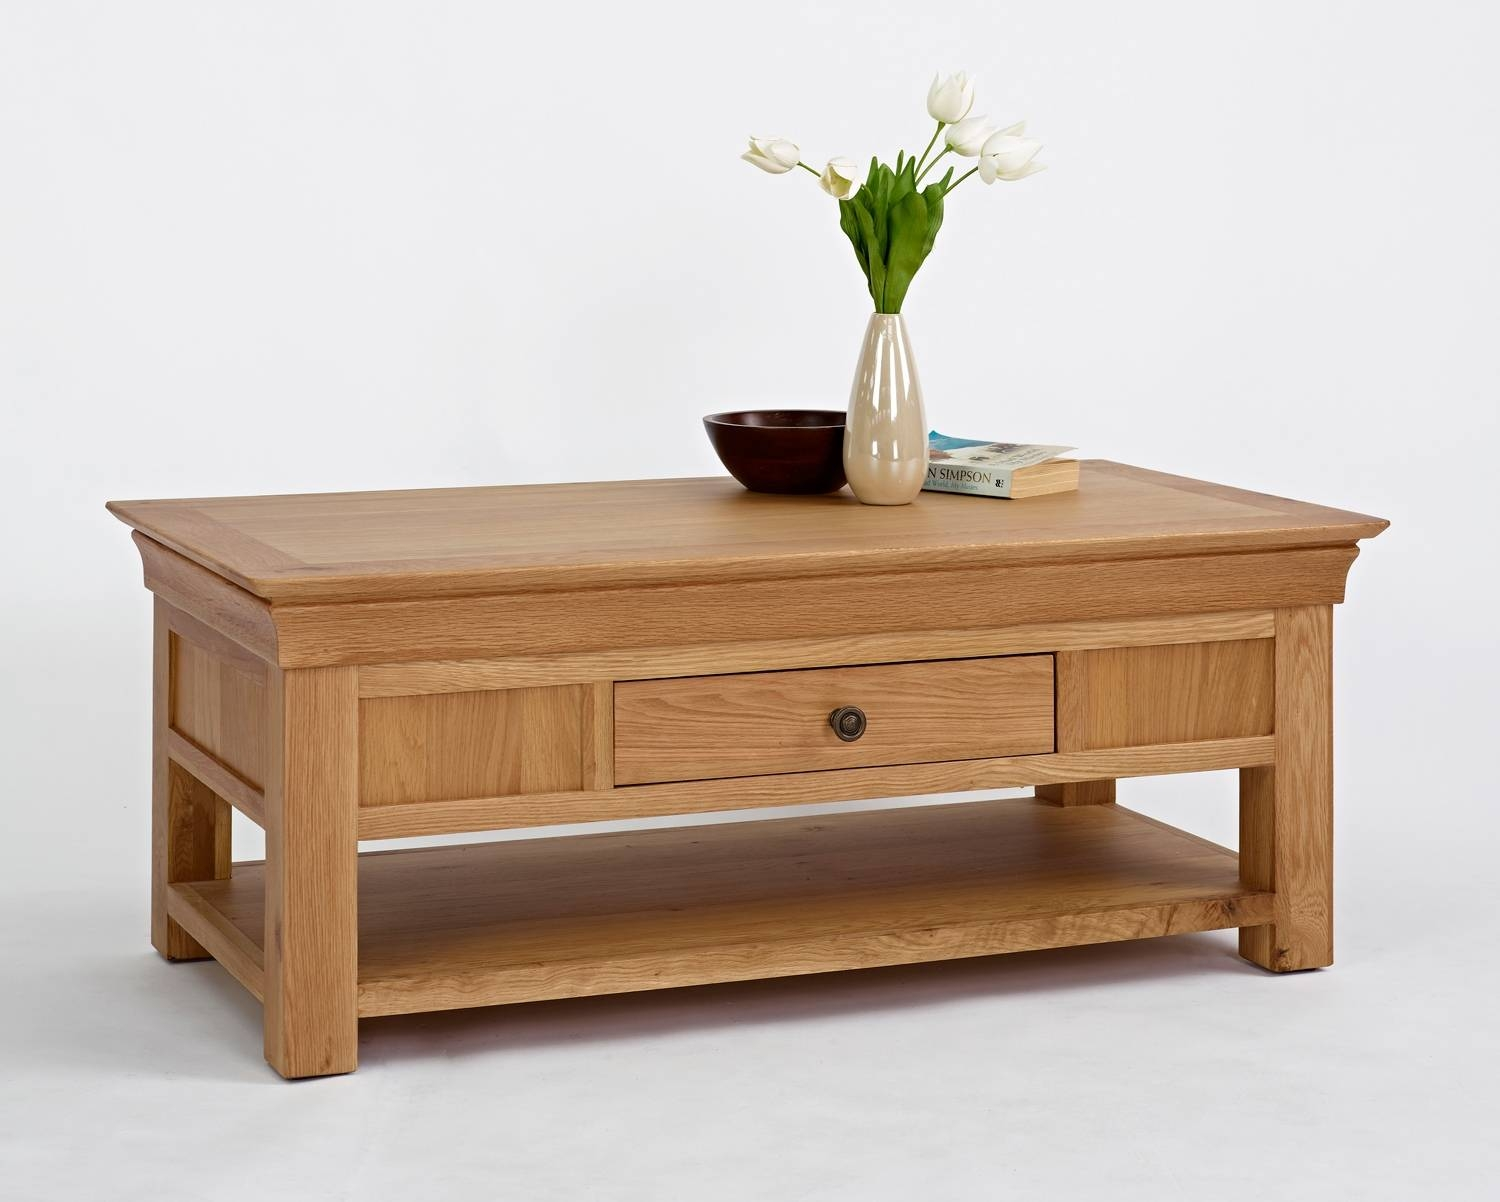 Oak Coffee Tables + Other Living Room Furniture - Oak Furniture throughout Large Square Oak Coffee Tables (Image 11 of 15)